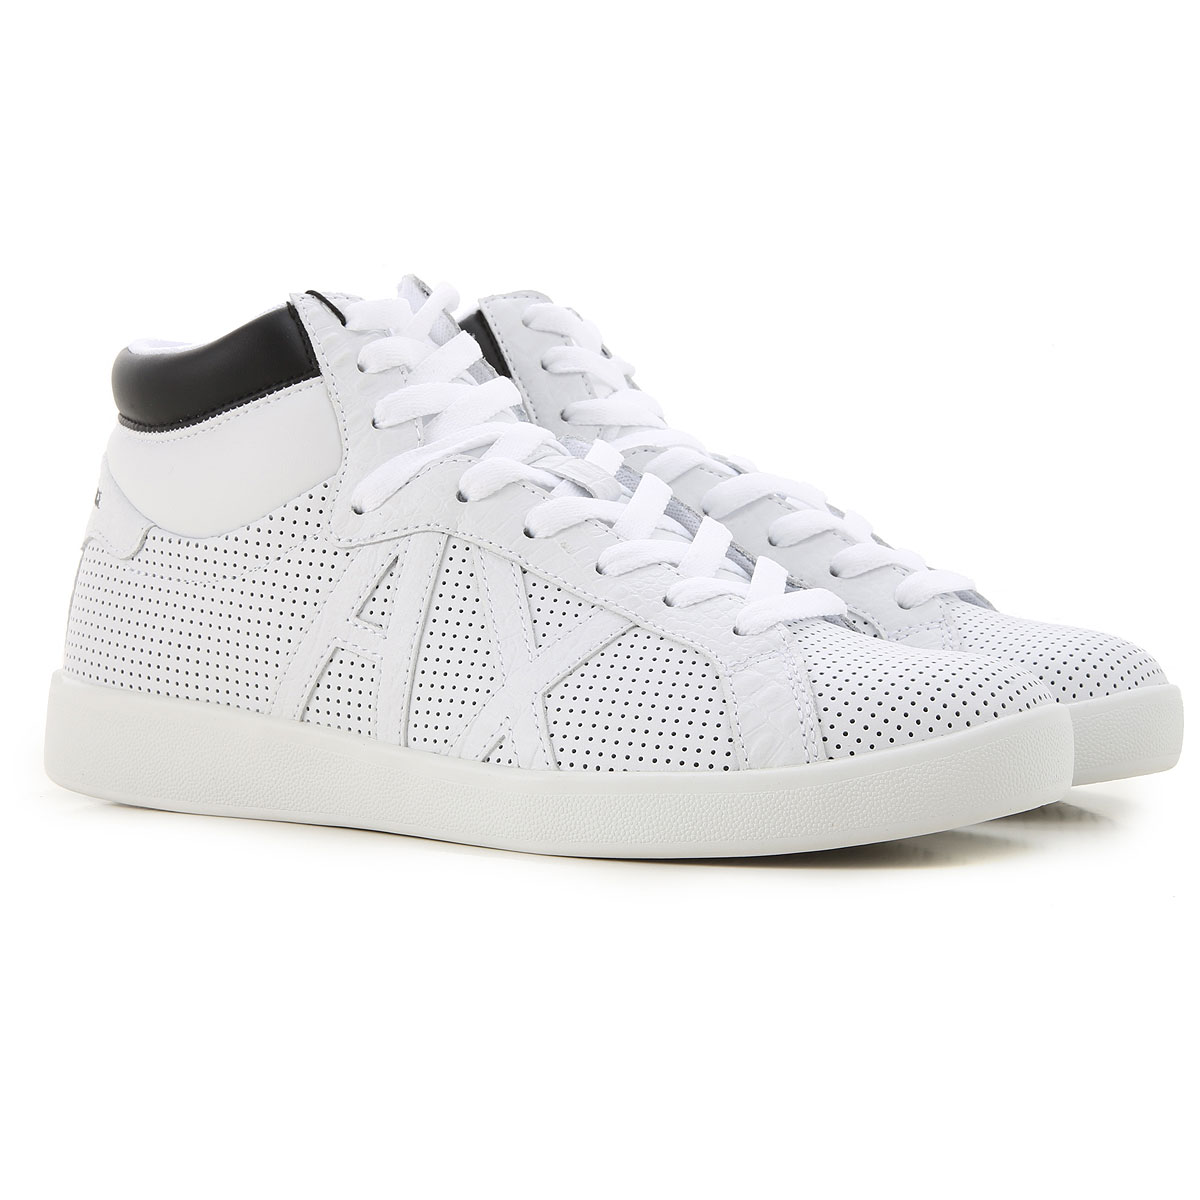 Armani Exchange Sneakers for Men On Sale, White, Leather, 2019, 7 8 9